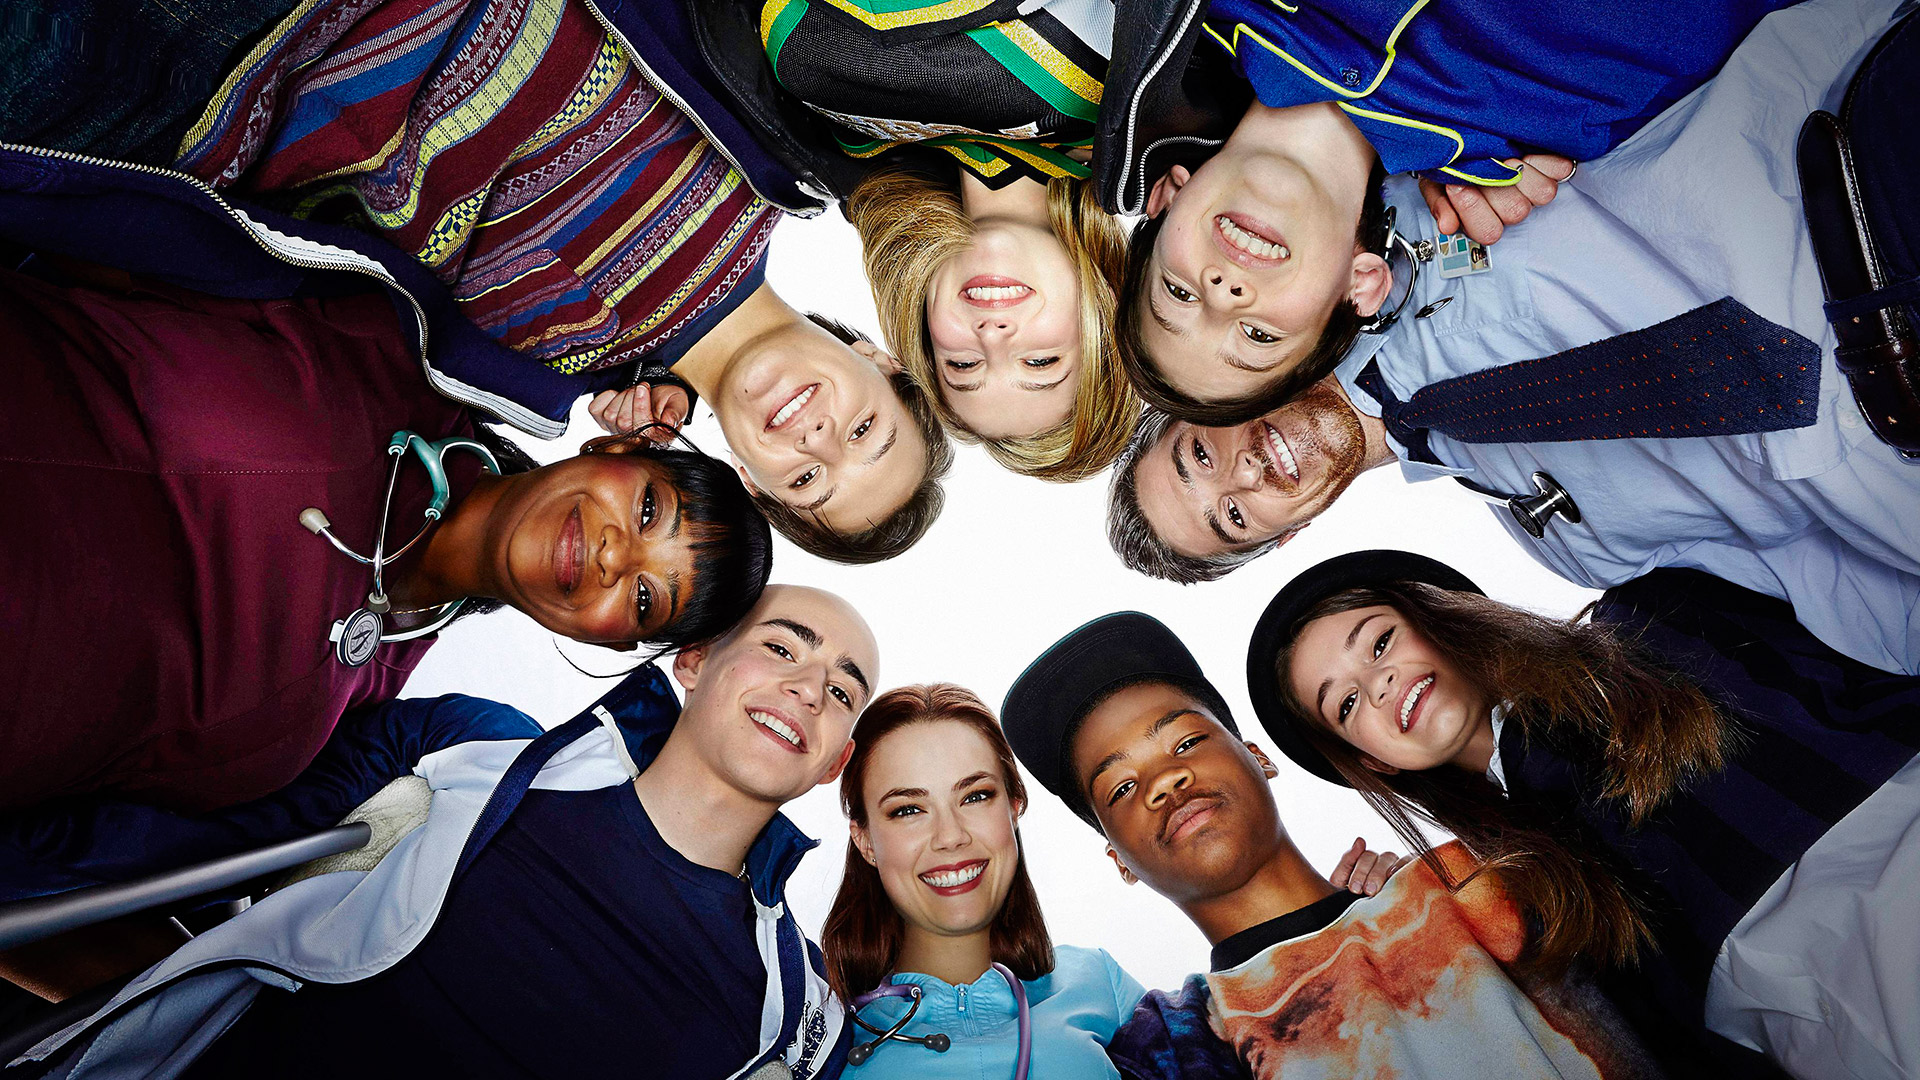 Red Band Society officieel gecanceld